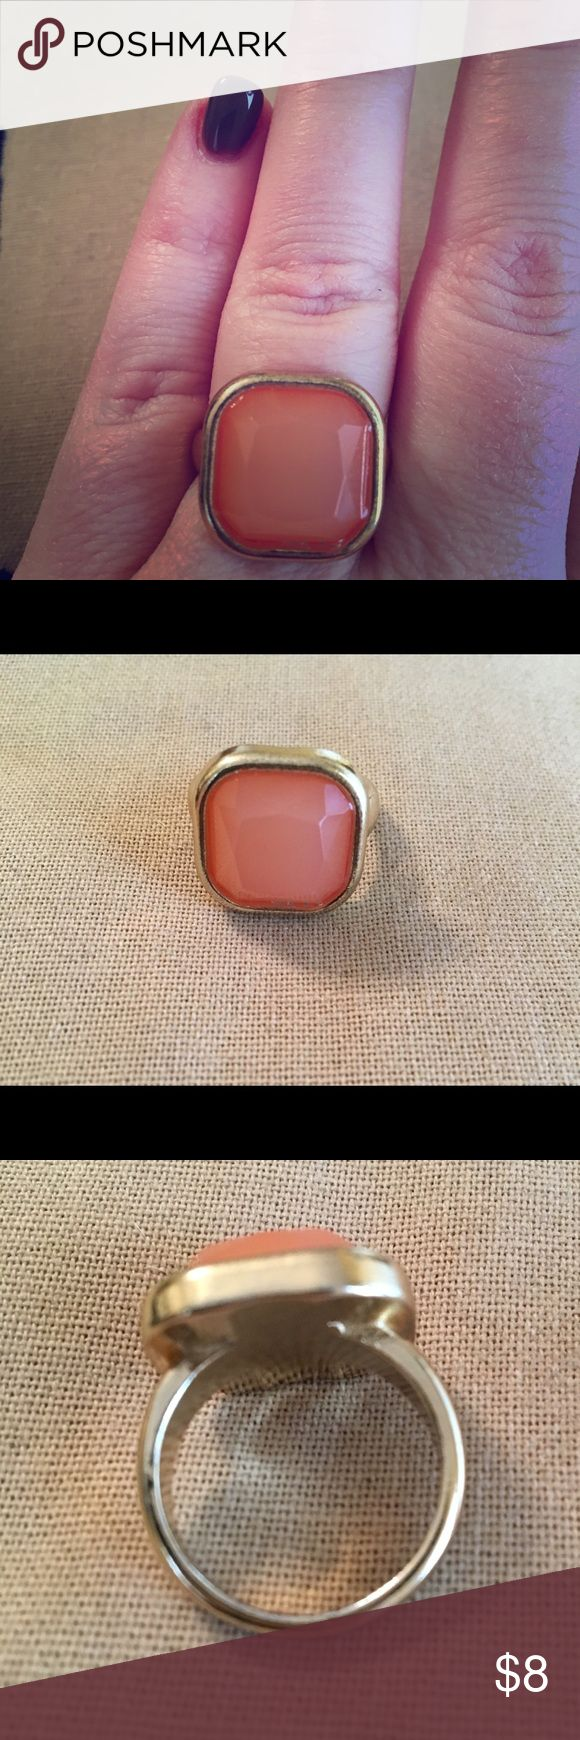 Coral and distressed gold ring size 8 Super cute coral and distressed gold ring will add a pop of color to a neutral outfit. Worn only a handful of times in the past 2 years. Old Navy Jewelry Rings